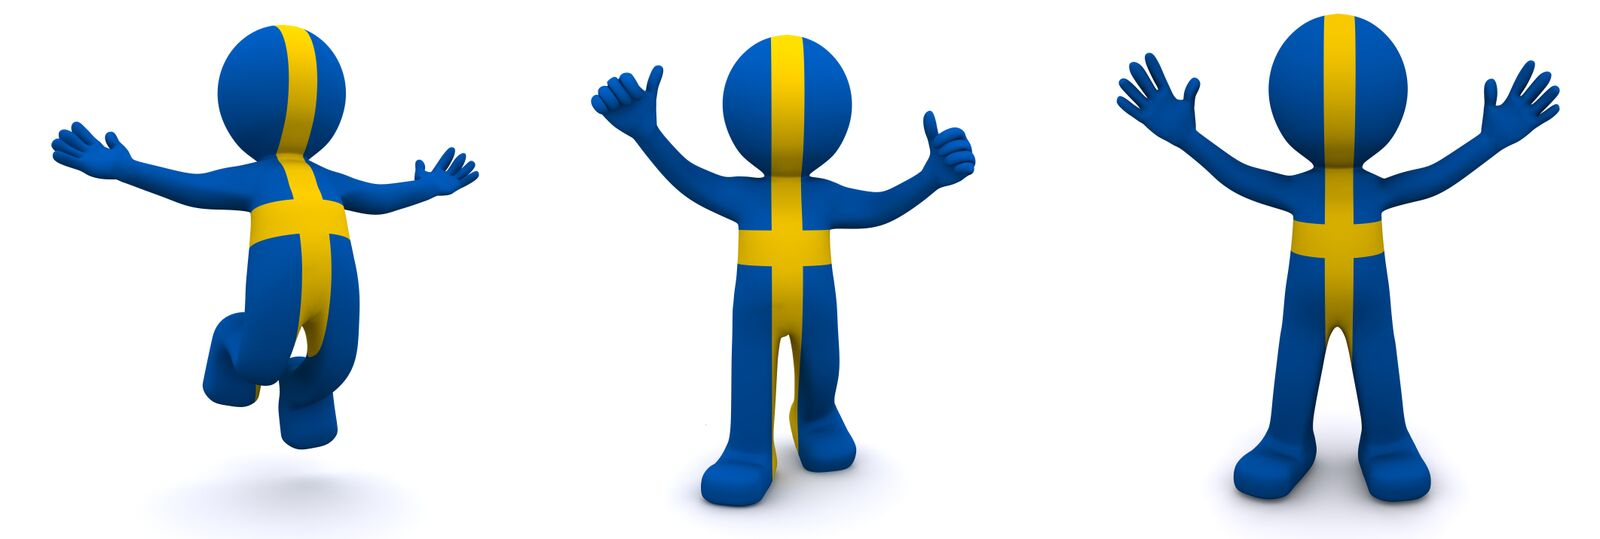 3d-character-textured-with-flag-of-sweden_fJgd-20O (1)